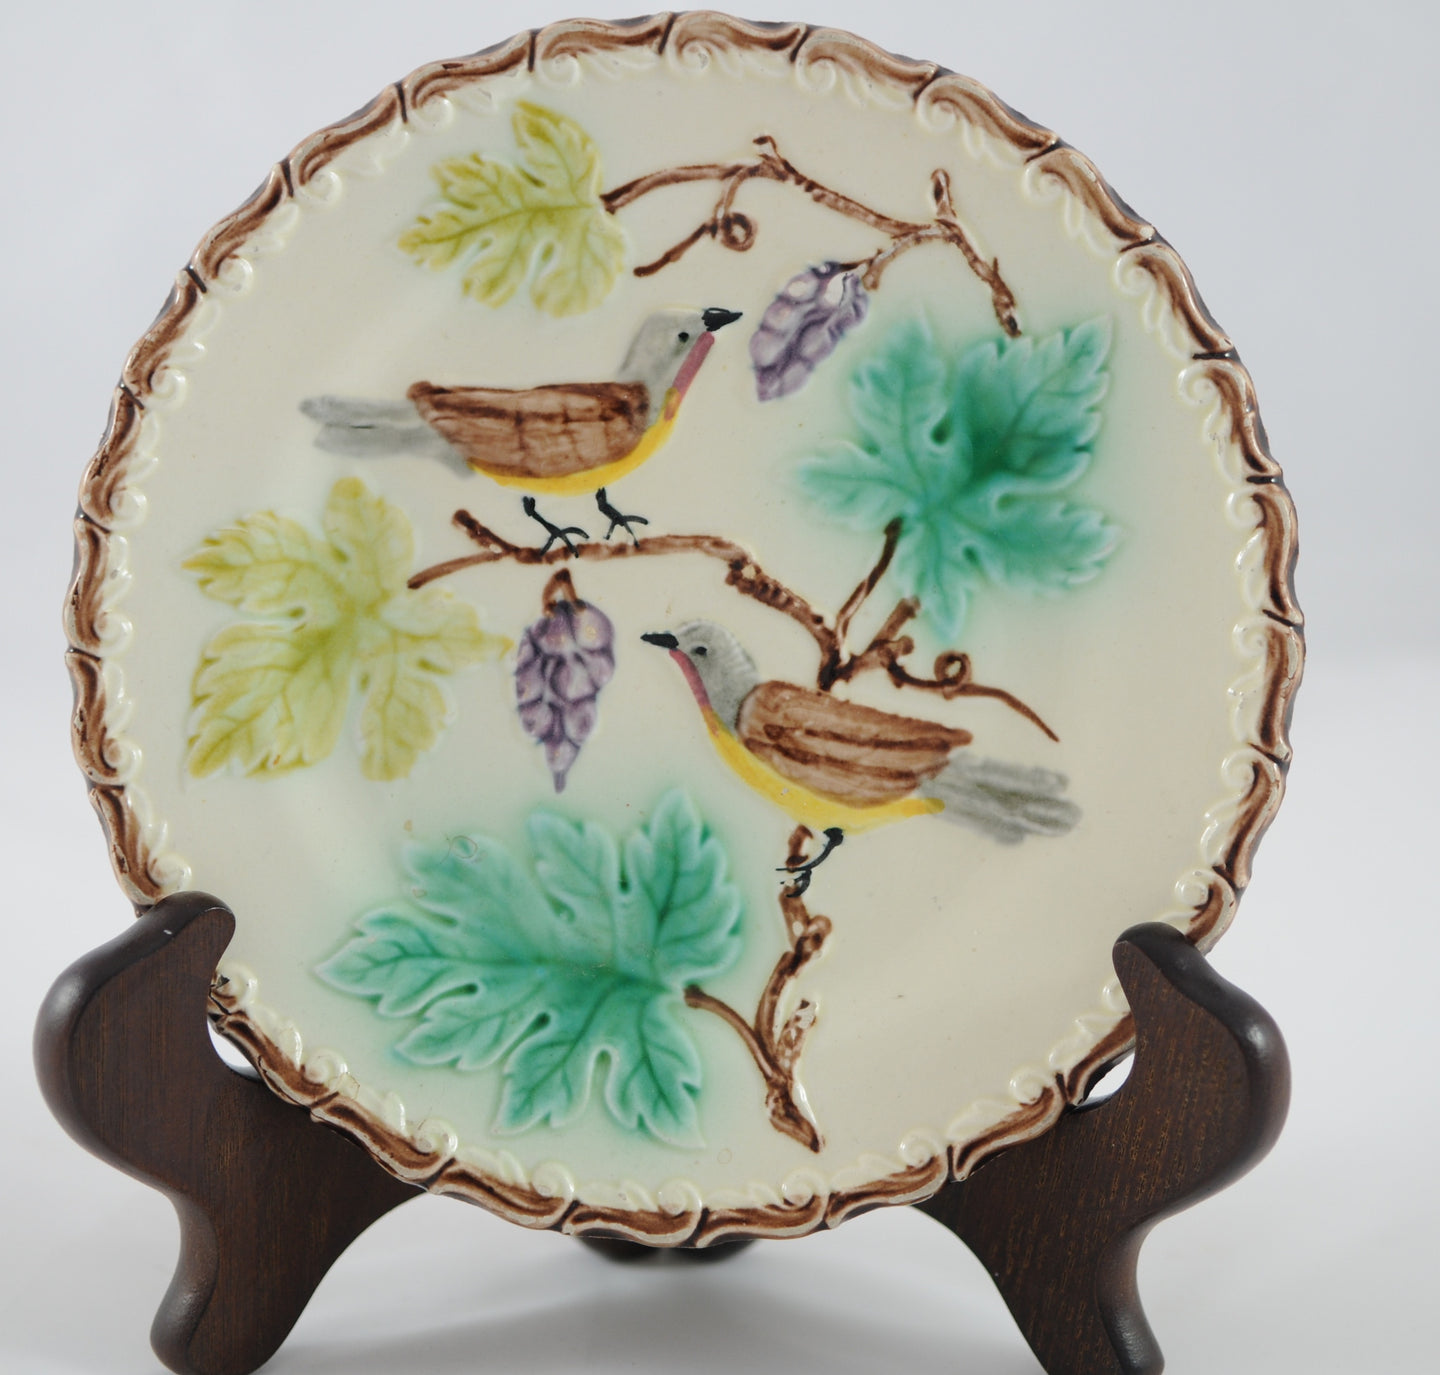 Antique German Majolica Plate Zell Birds and Grapes - Chestnut Lane Antiques & Interiors  - 1